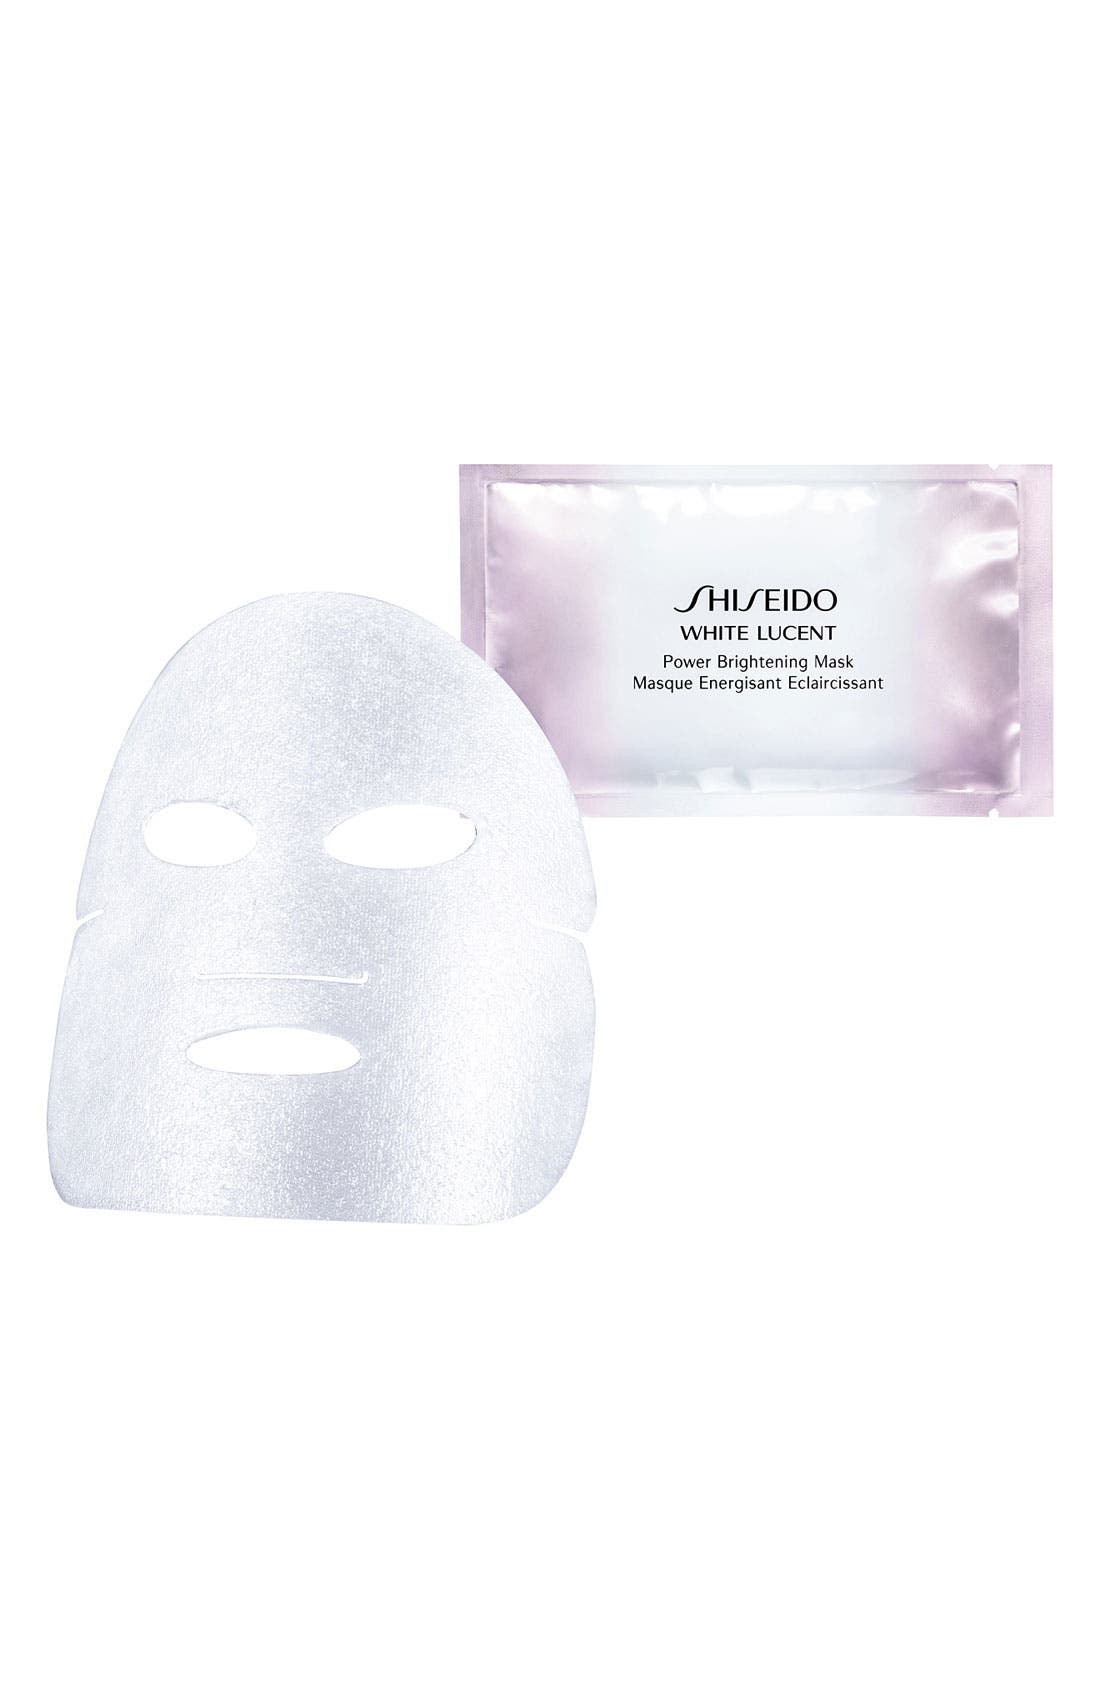 White Lucent Power Brightening Mask,                             Main thumbnail 1, color,                             NO COLOR